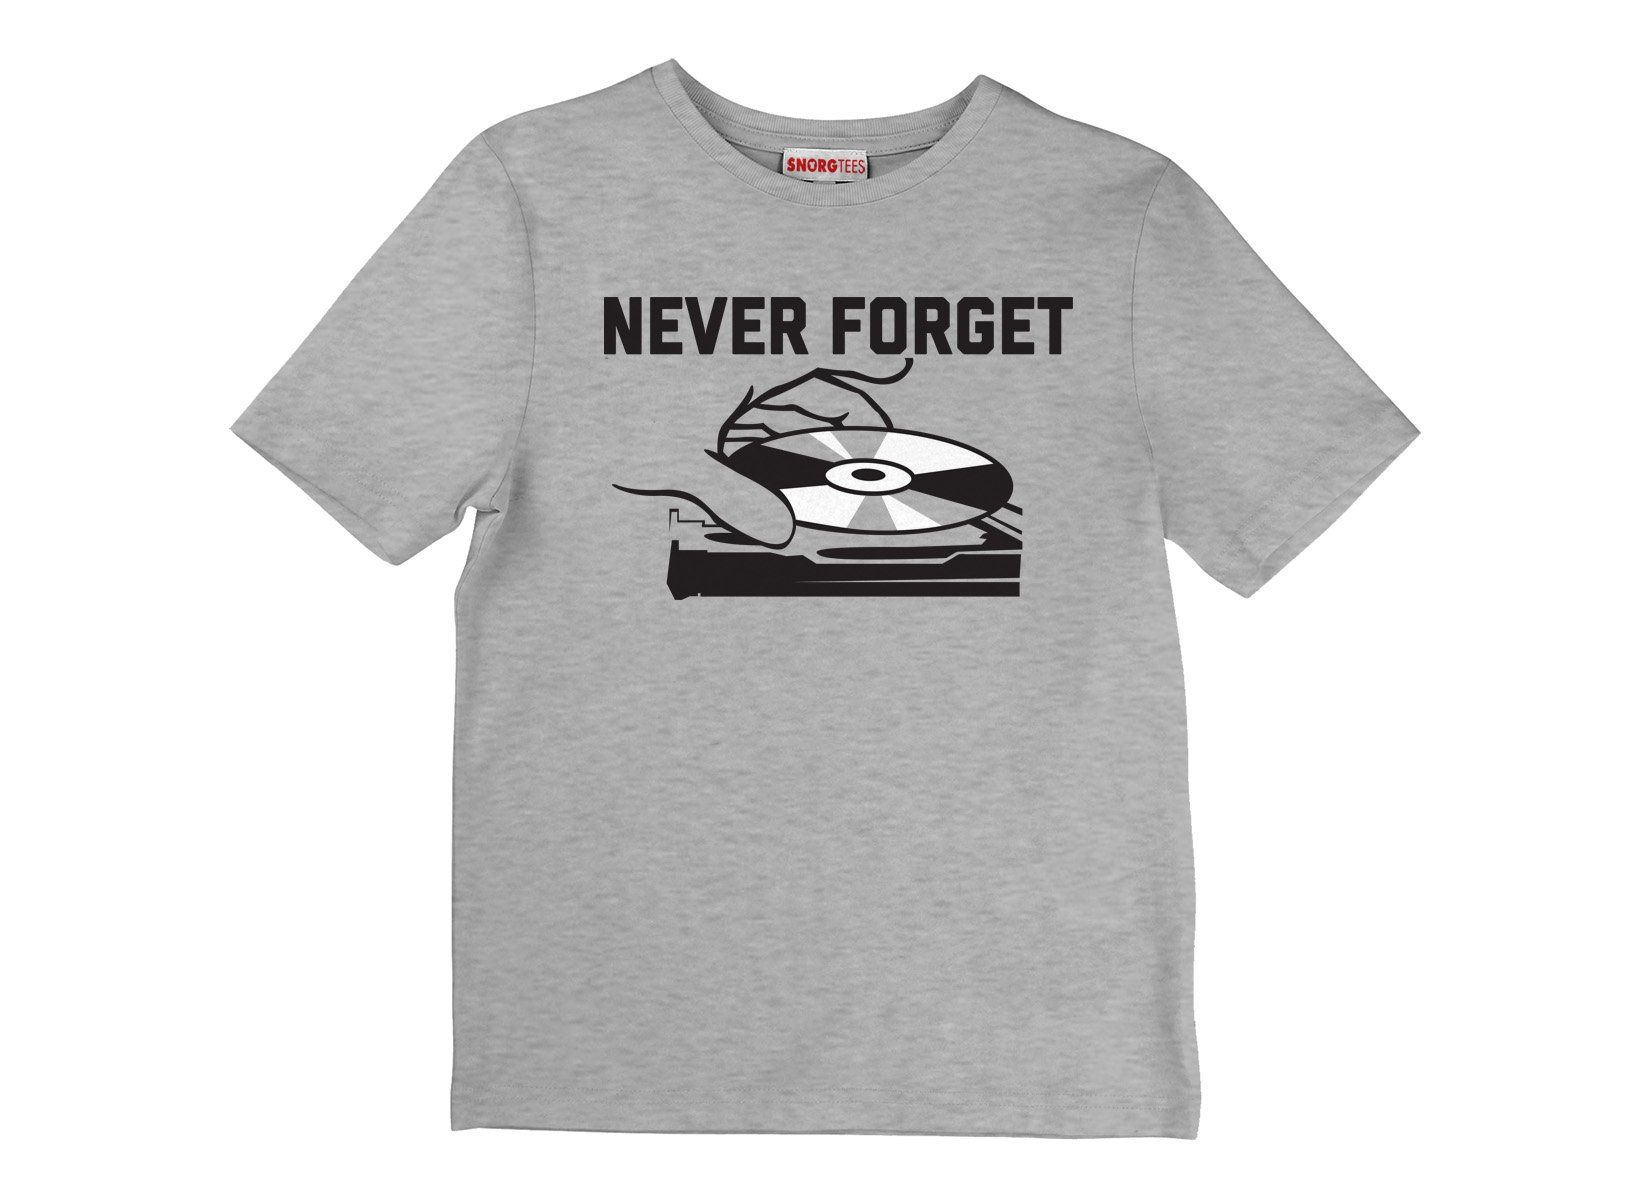 Never Forget on Kids T-Shirt